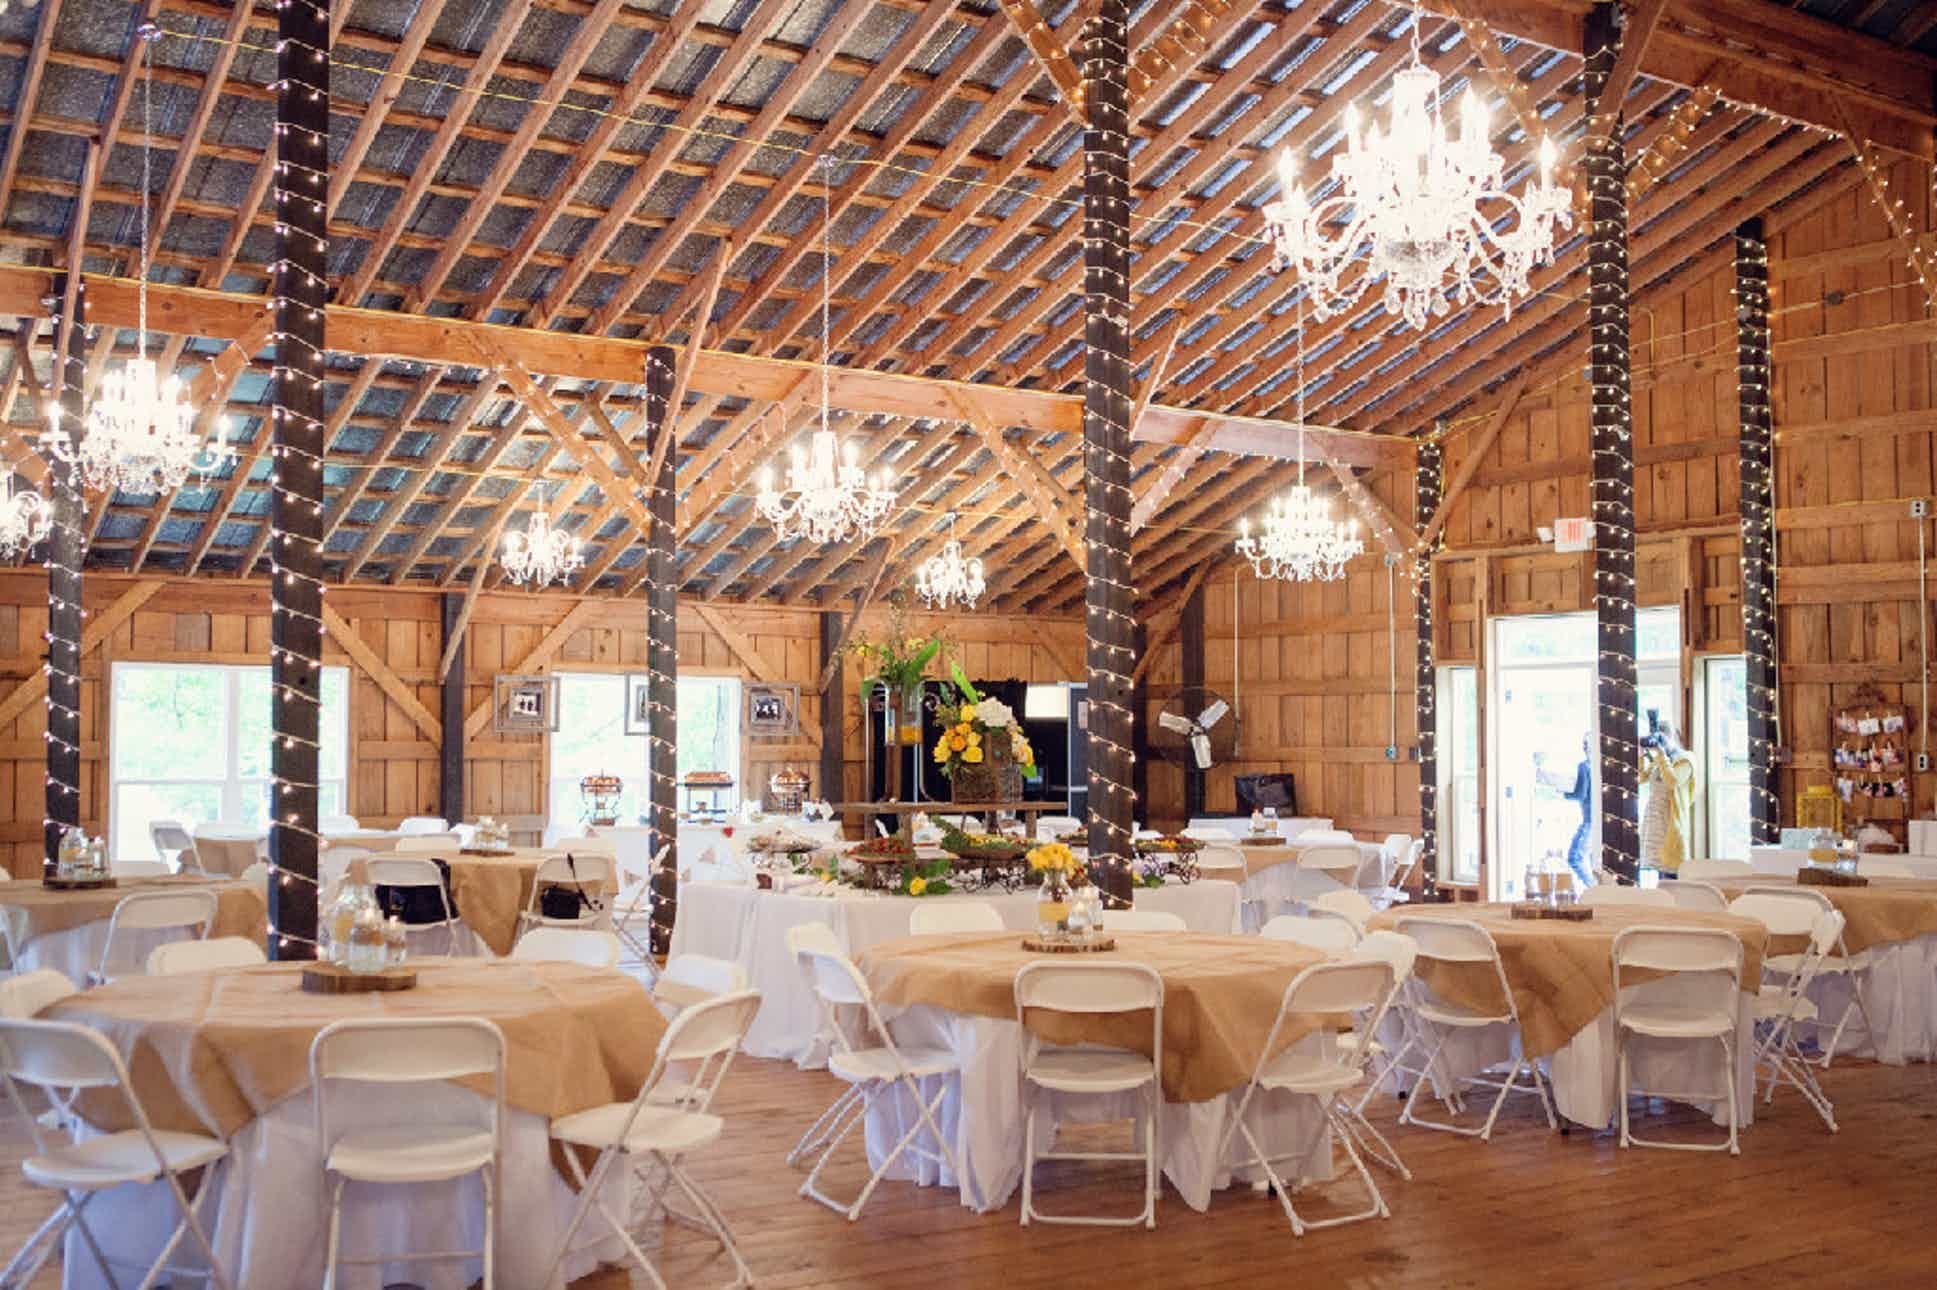 Applewood Farm Pell City Weddings Alabama Wedding Venues 35128 Alabama Wedding Venues Alabama Weddings Wedding Venues